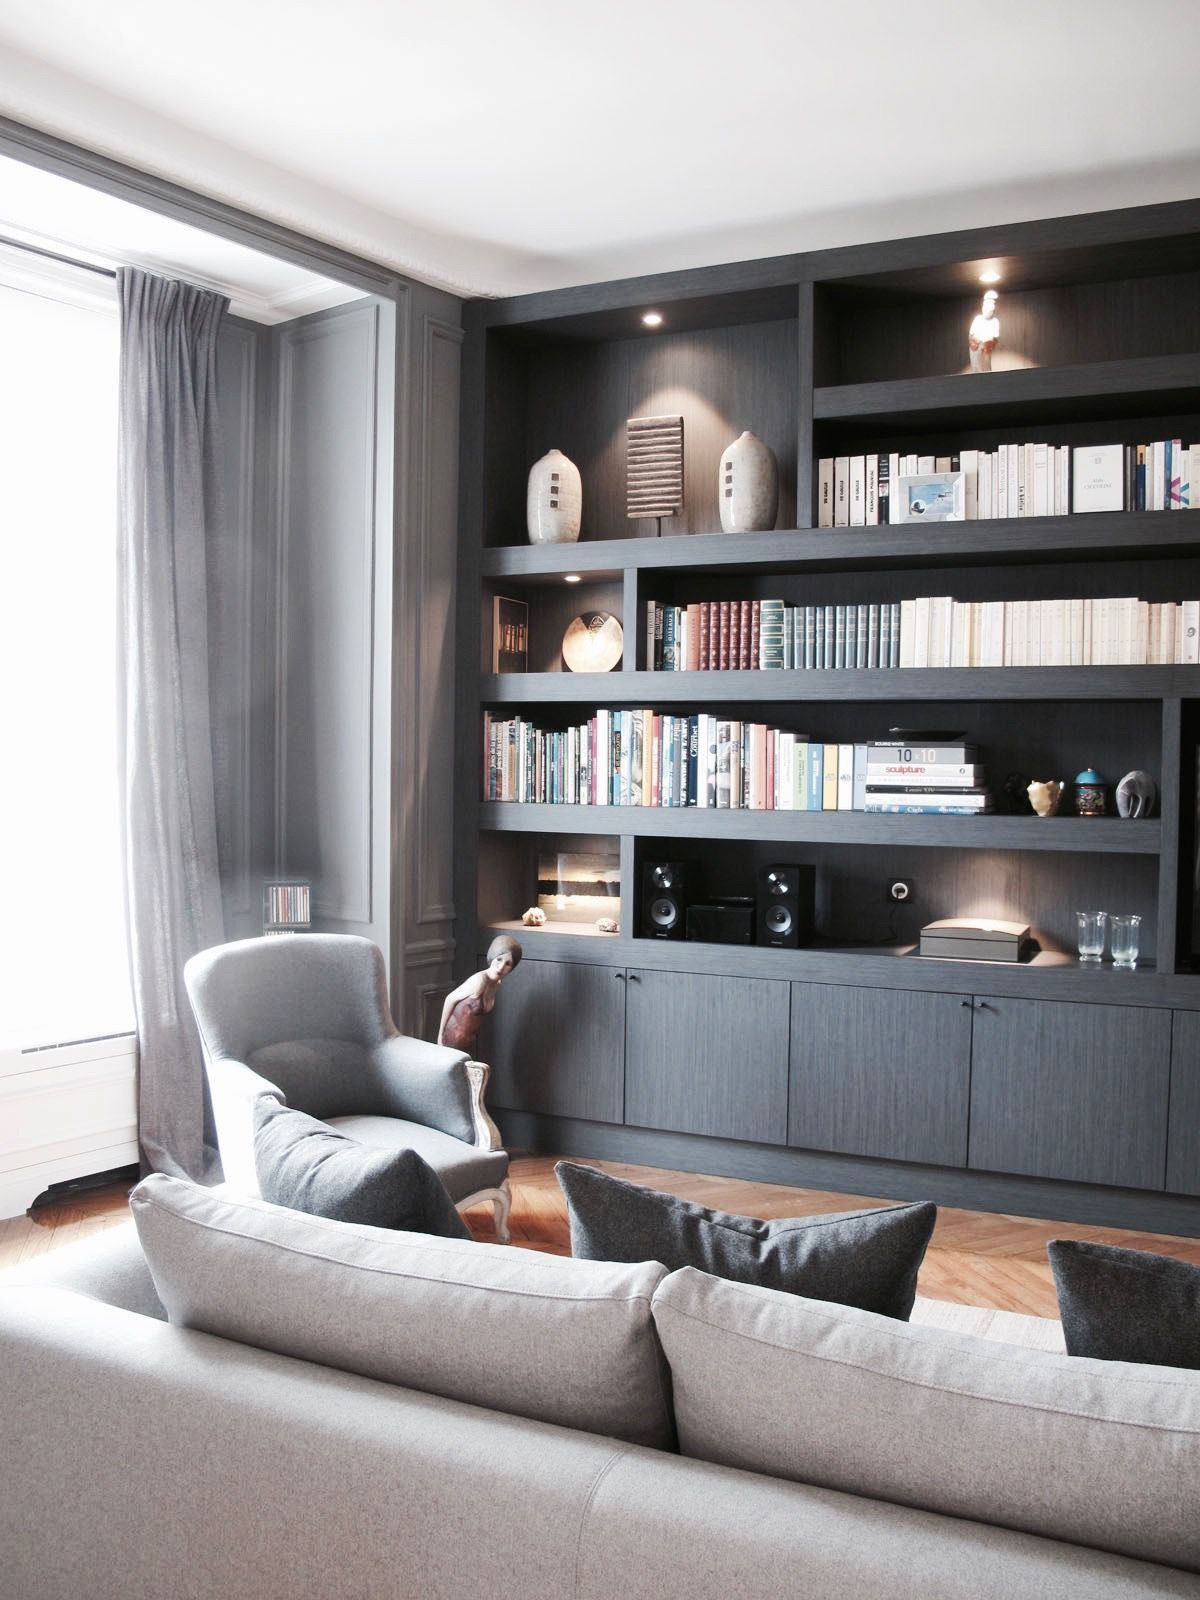 living room living room en 2019 meuble mural salon biblioth que salon et decor salon